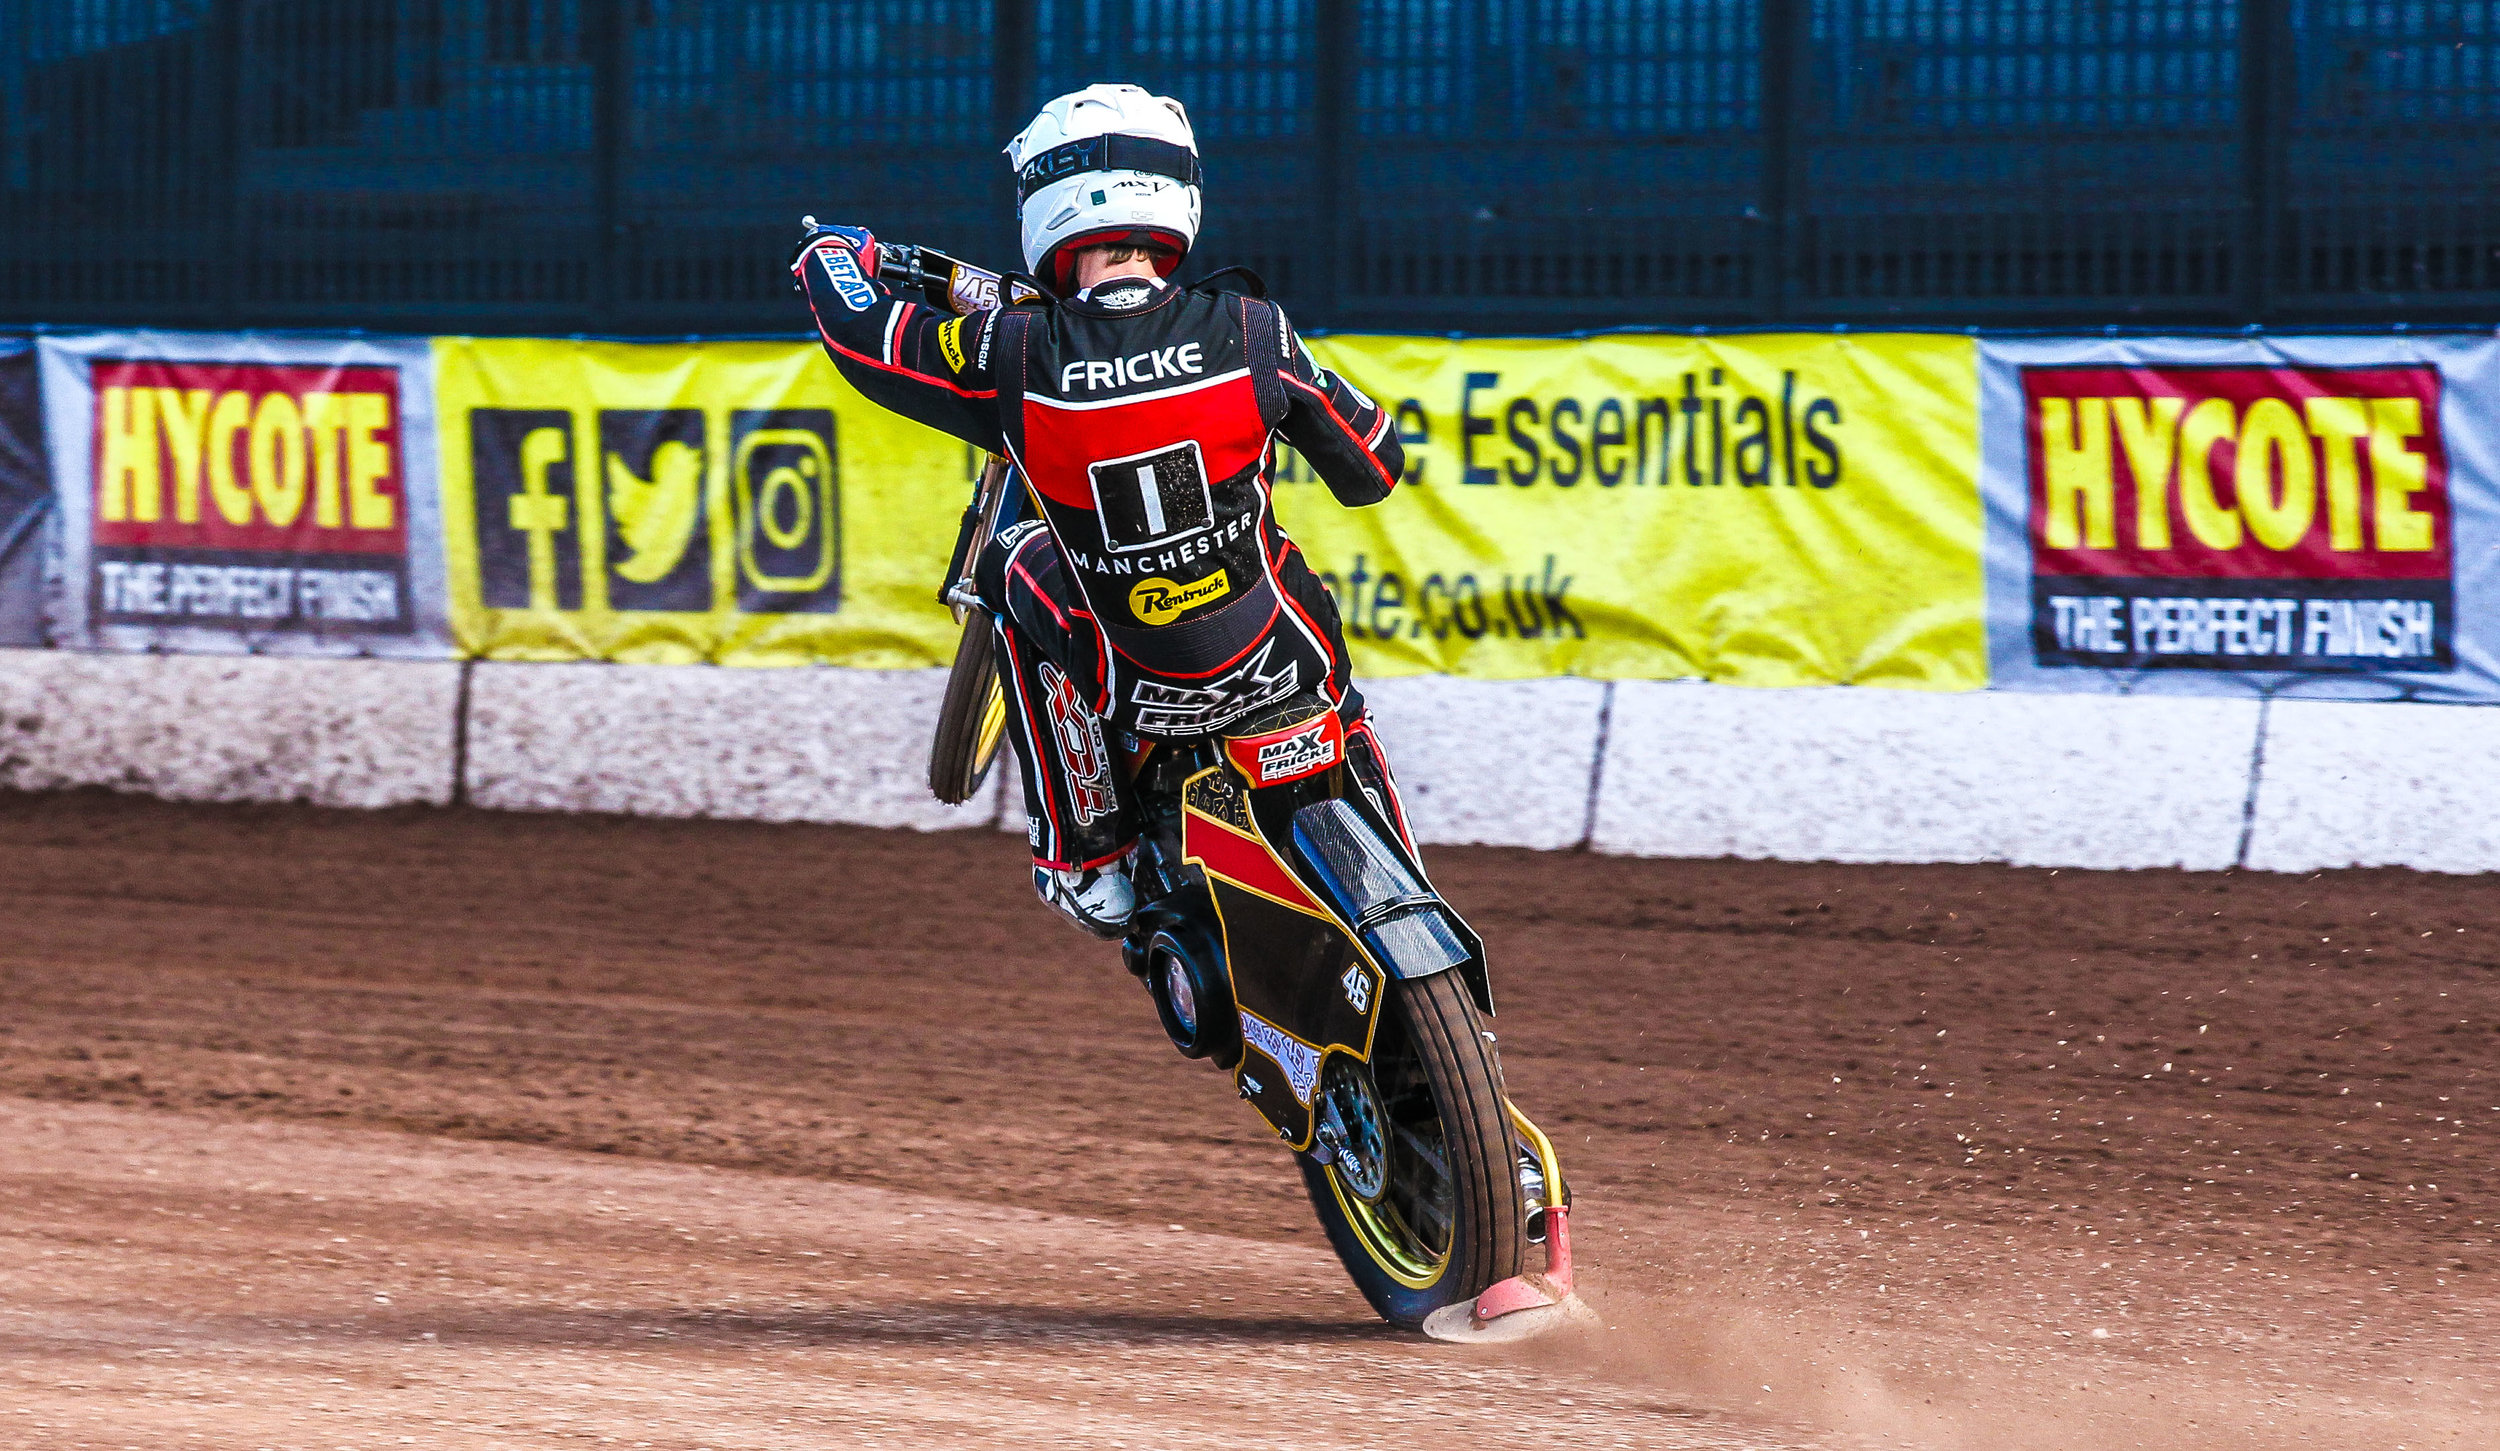 Max Fricke successfully booked his place in the 2020 GP Series at the weekend.